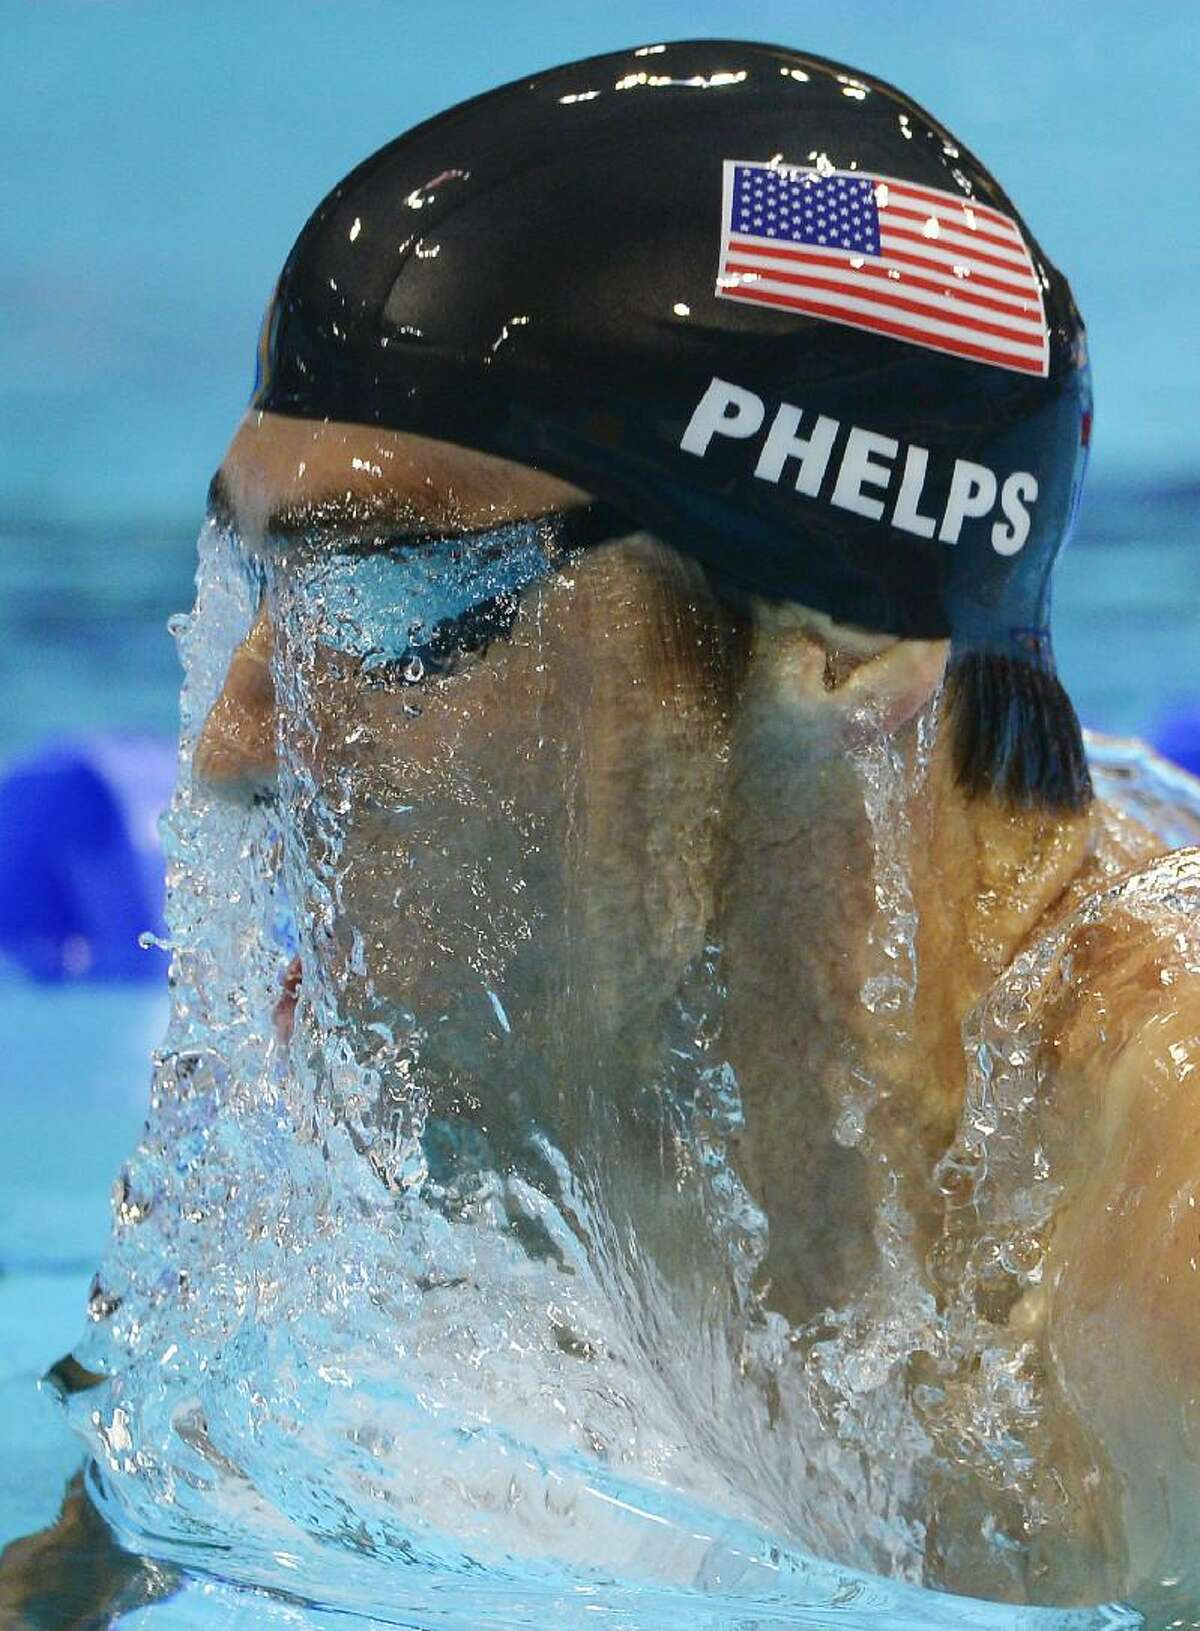 ASSOCIATED PRESS United States' Michael Phelps competes in the men's 400-meter individual medley swimming final at the Aquatics Centre in the Olympic Park during the 2012 Summer Olympics in London Saturday.